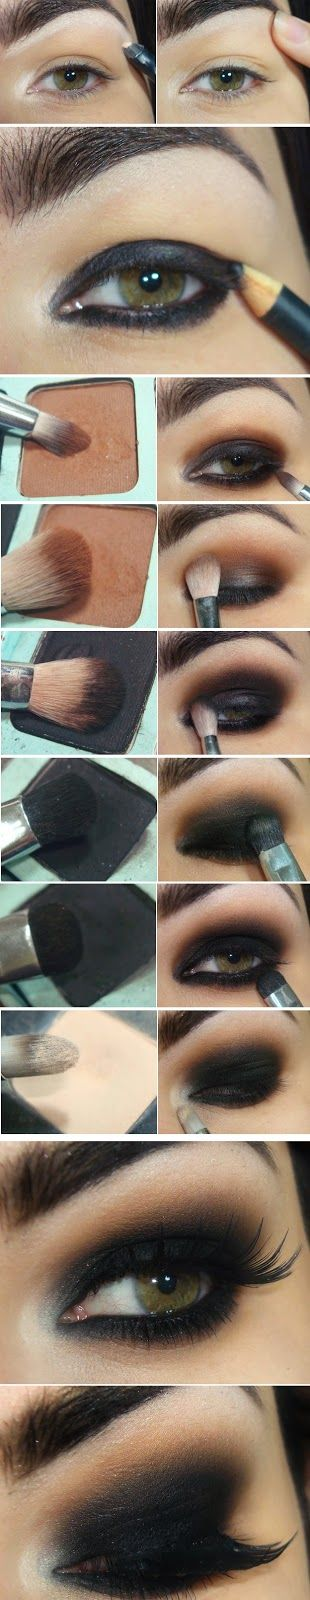 Tutorial de ojos ahumados en negro super famoso de LuLus Makeup Fashion.